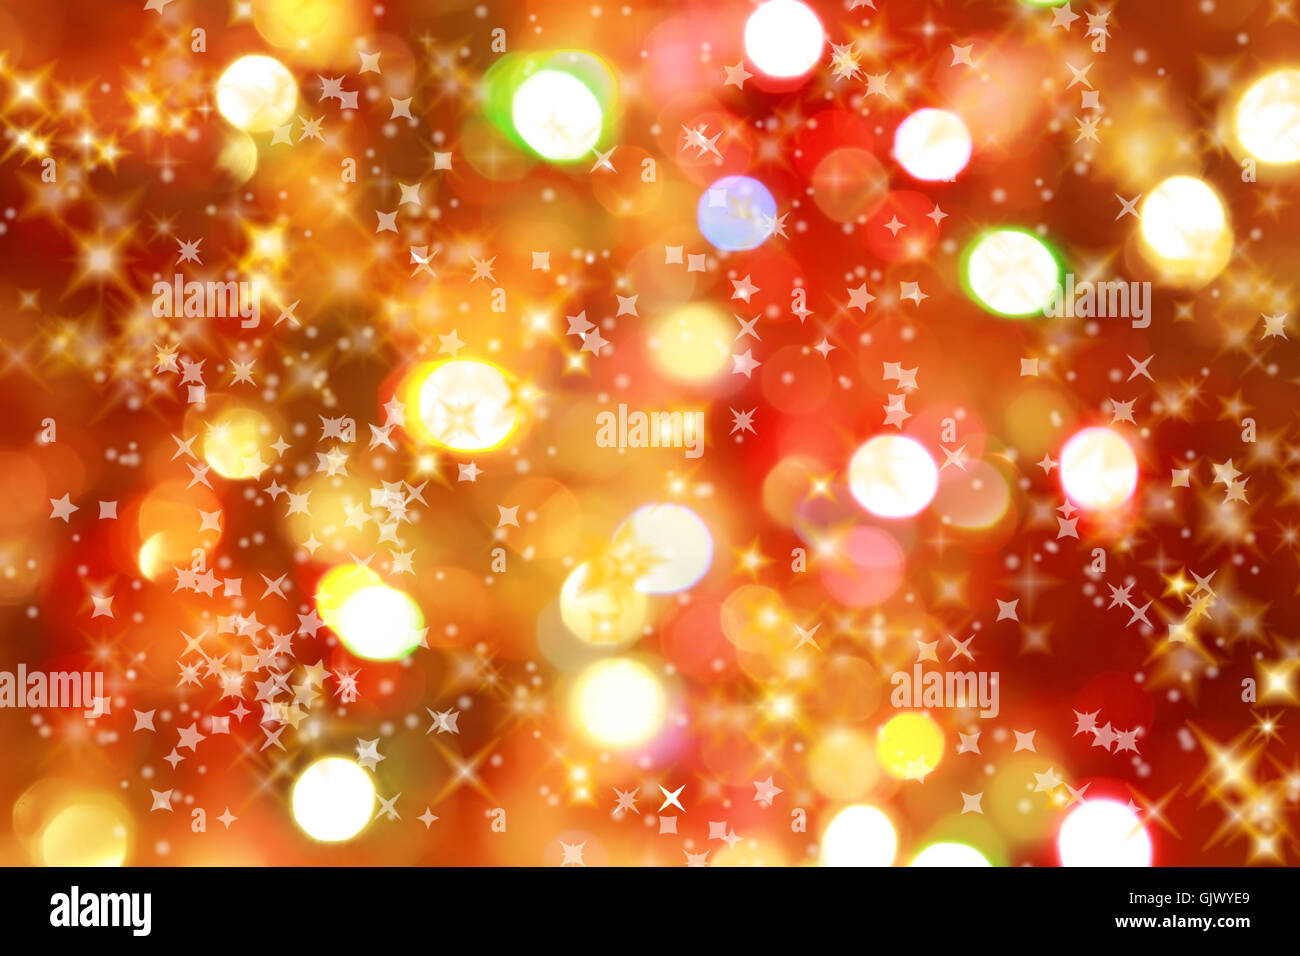 glow shimmer abstract - Stock Image